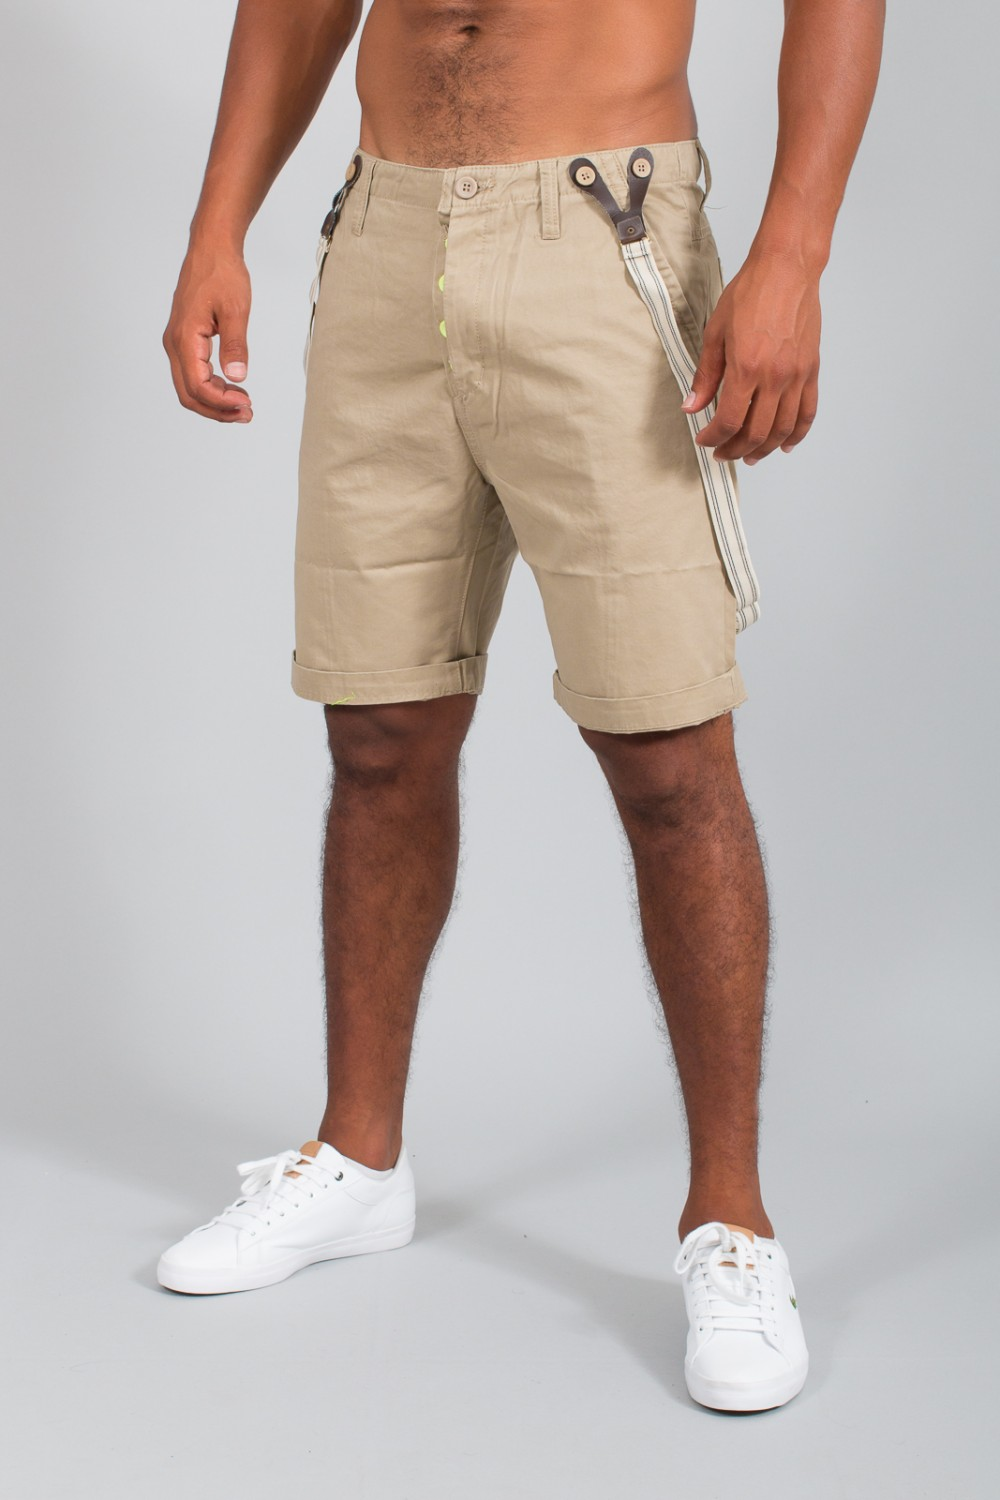 brand new another chance new specials bermuda homme chino avec bretelle bb058